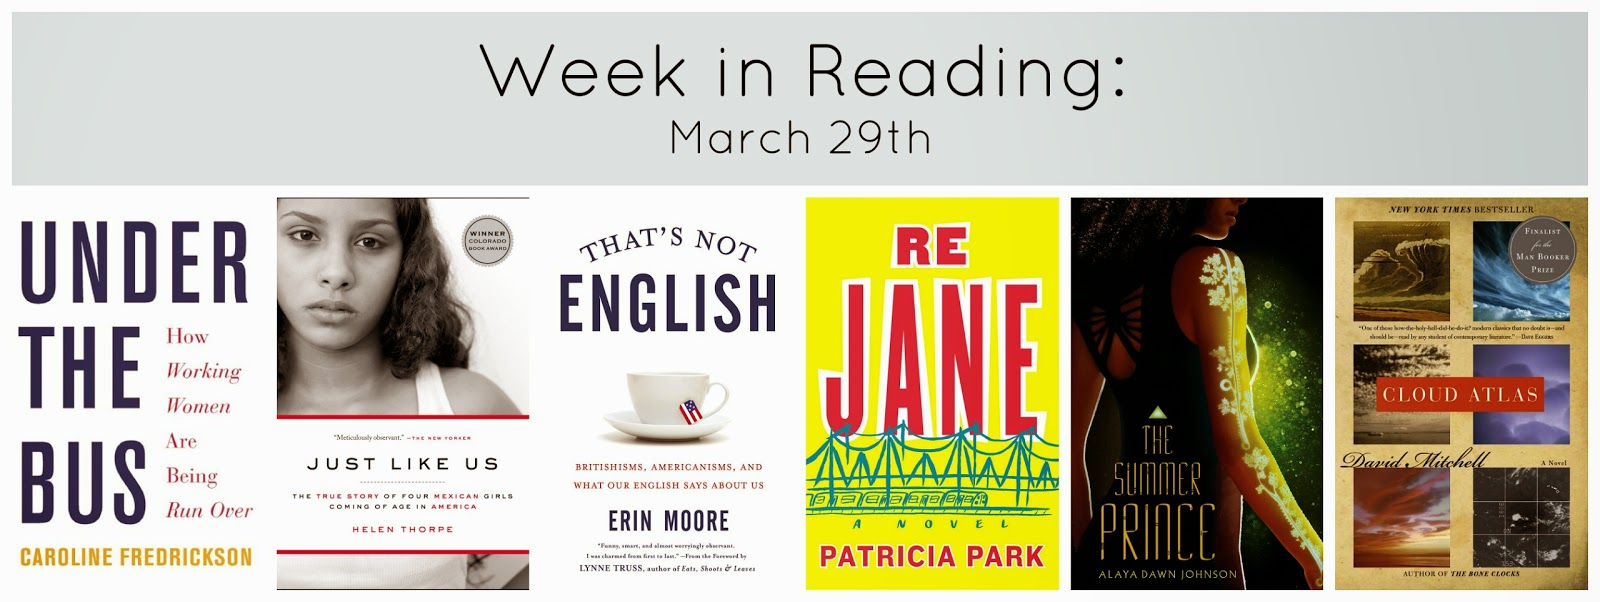 week in reading march 29th: book covers for under the bus by caroline frederickson; just like us by helen thorpe; that's not english by erin moore; re jane by patricia park; the summer prince by alaya dawn johnson; cloud atlas by david mitchell